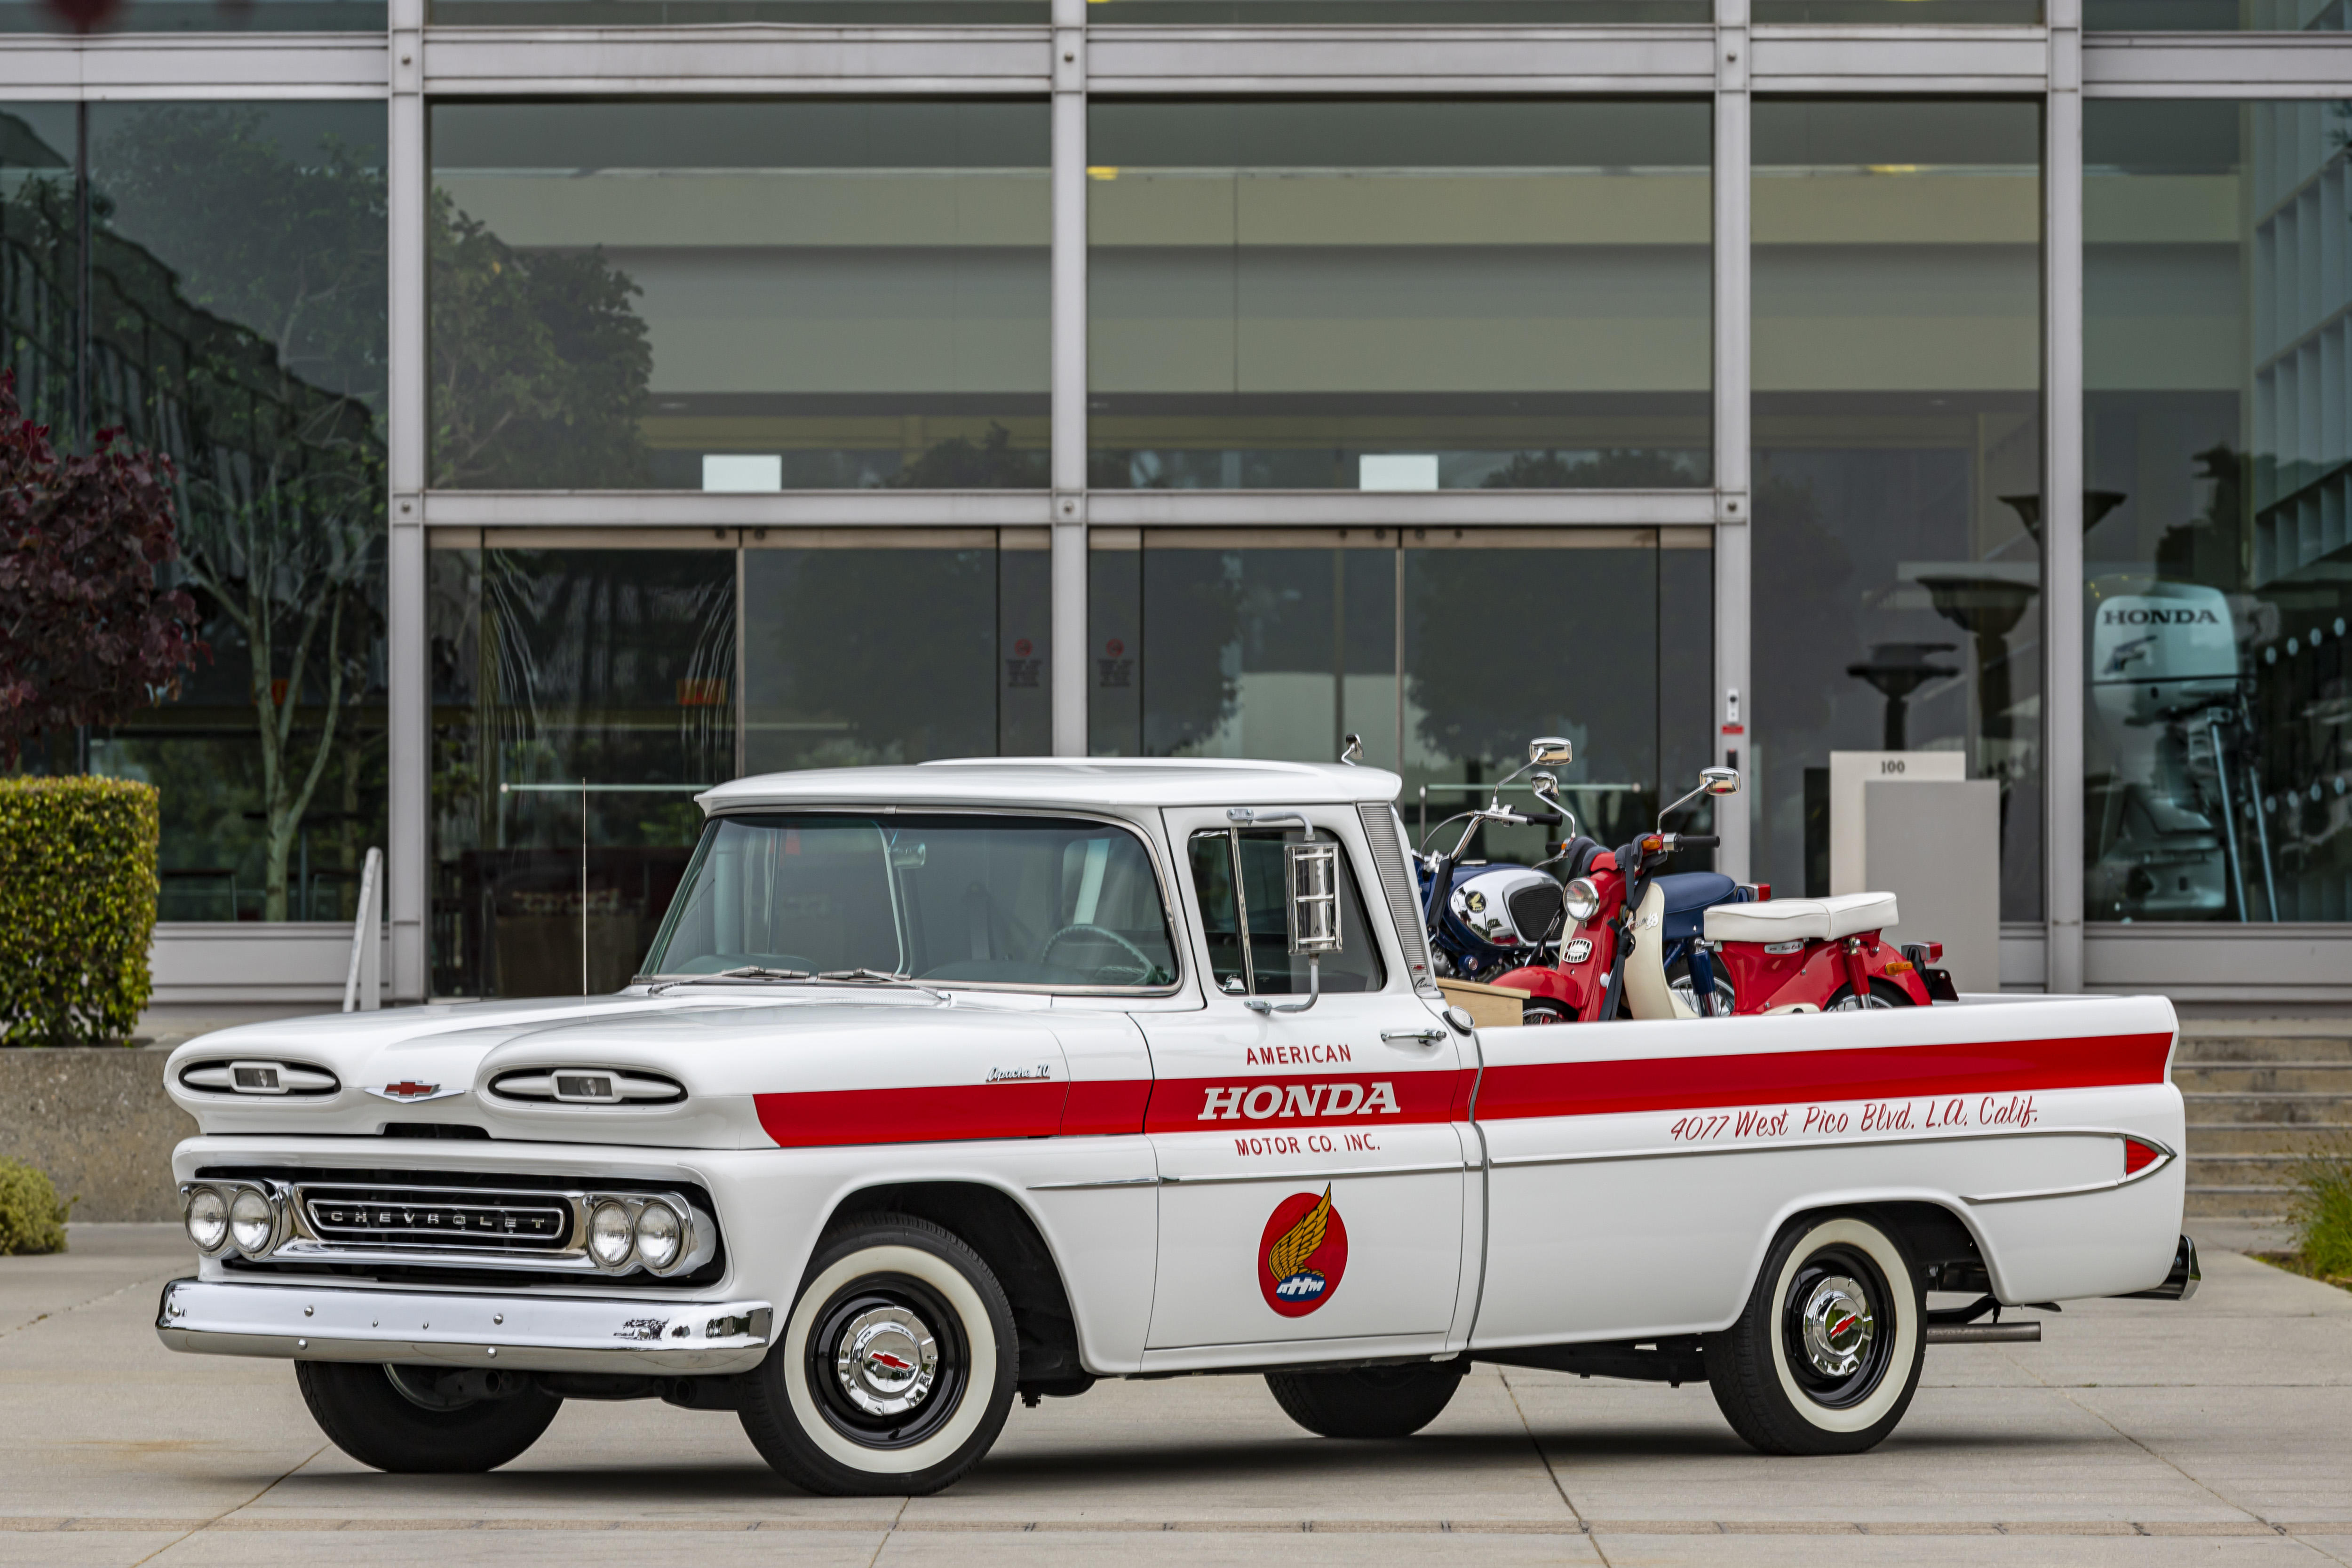 01-american-honda-60th-anniversary-chevy-delivery-truck